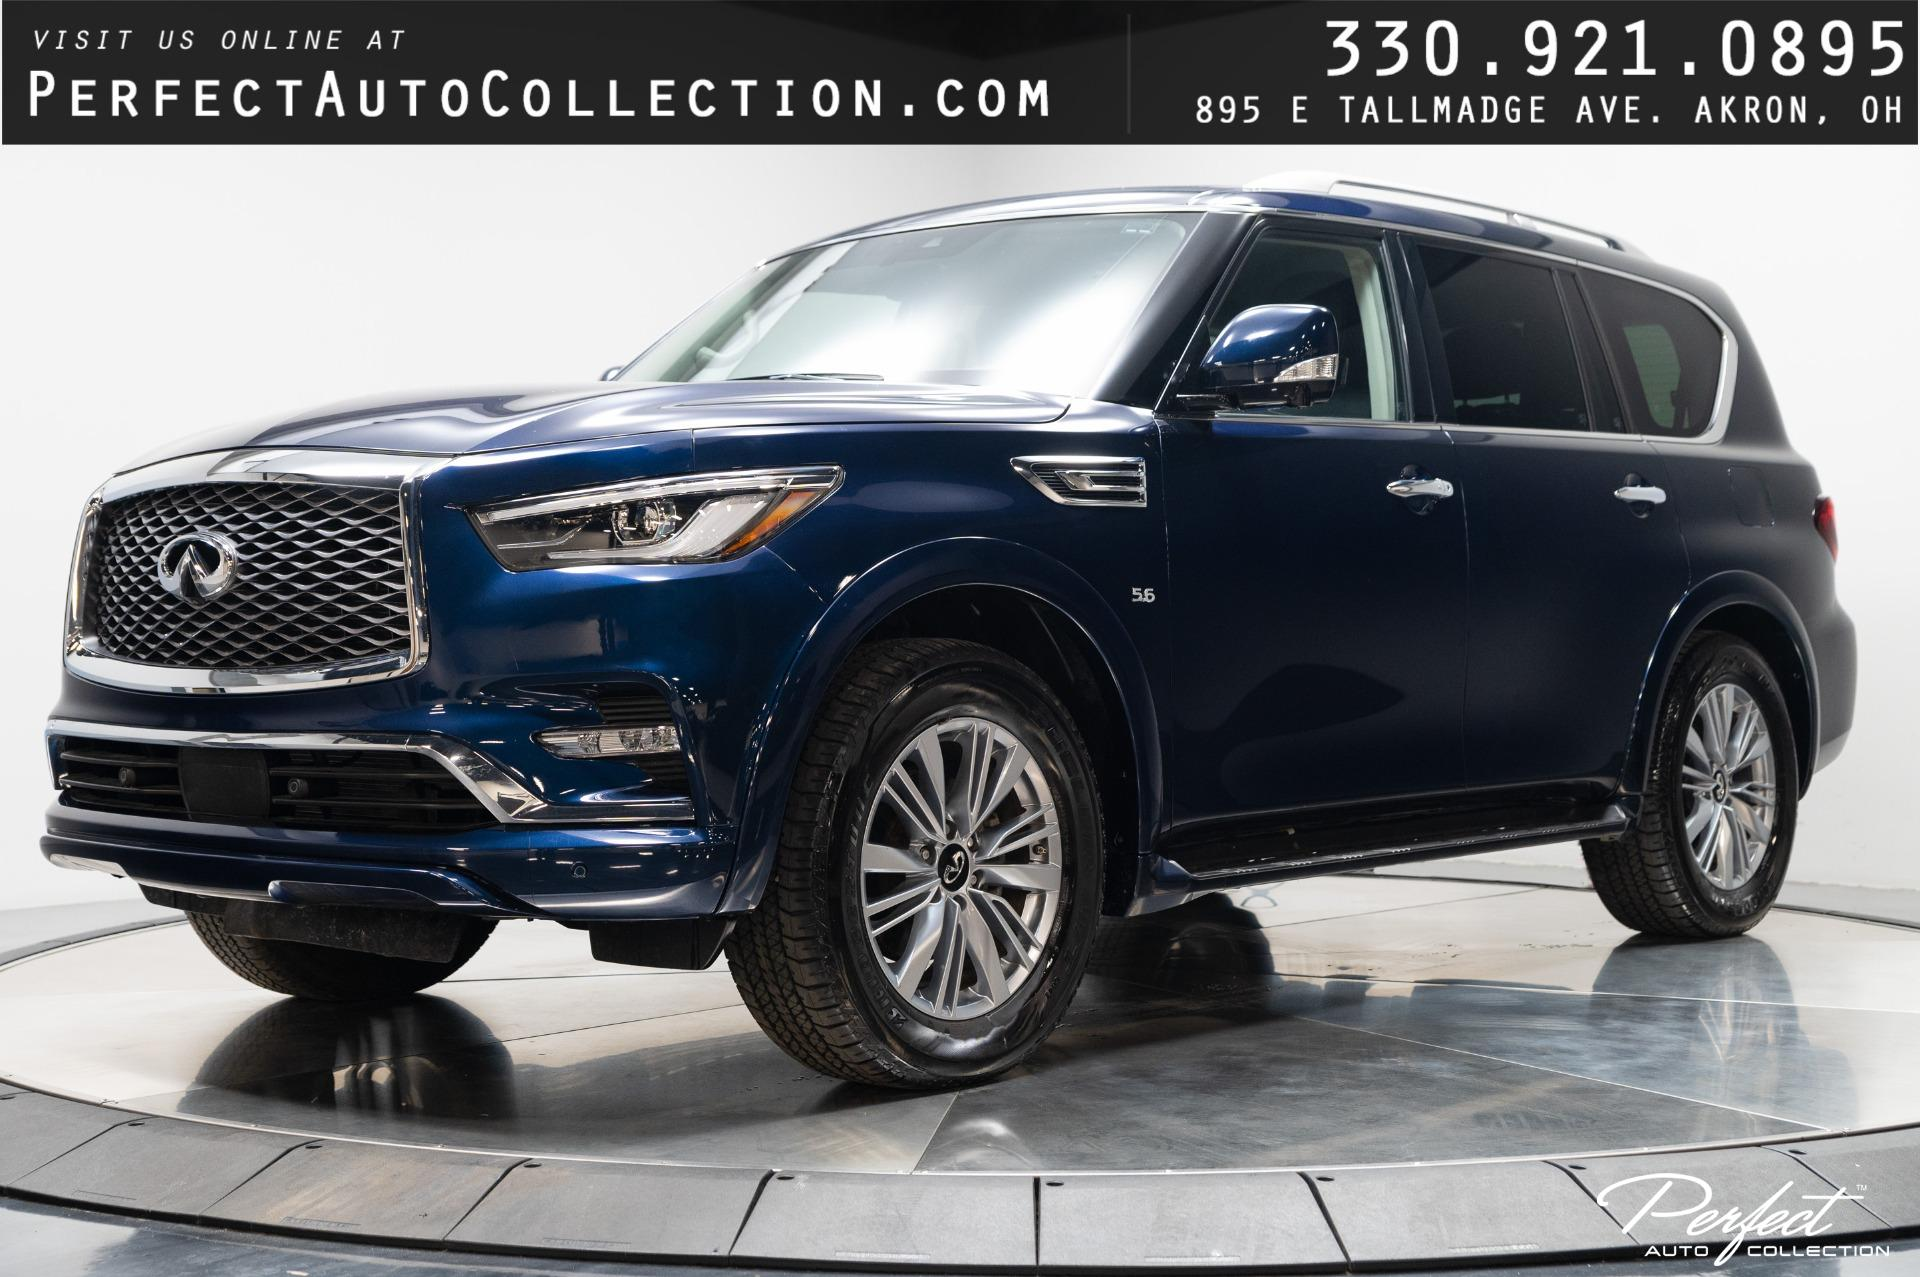 Used 2019 INFINITI QX80 Luxe for sale $50,895 at Perfect Auto Collection in Akron OH 44310 1